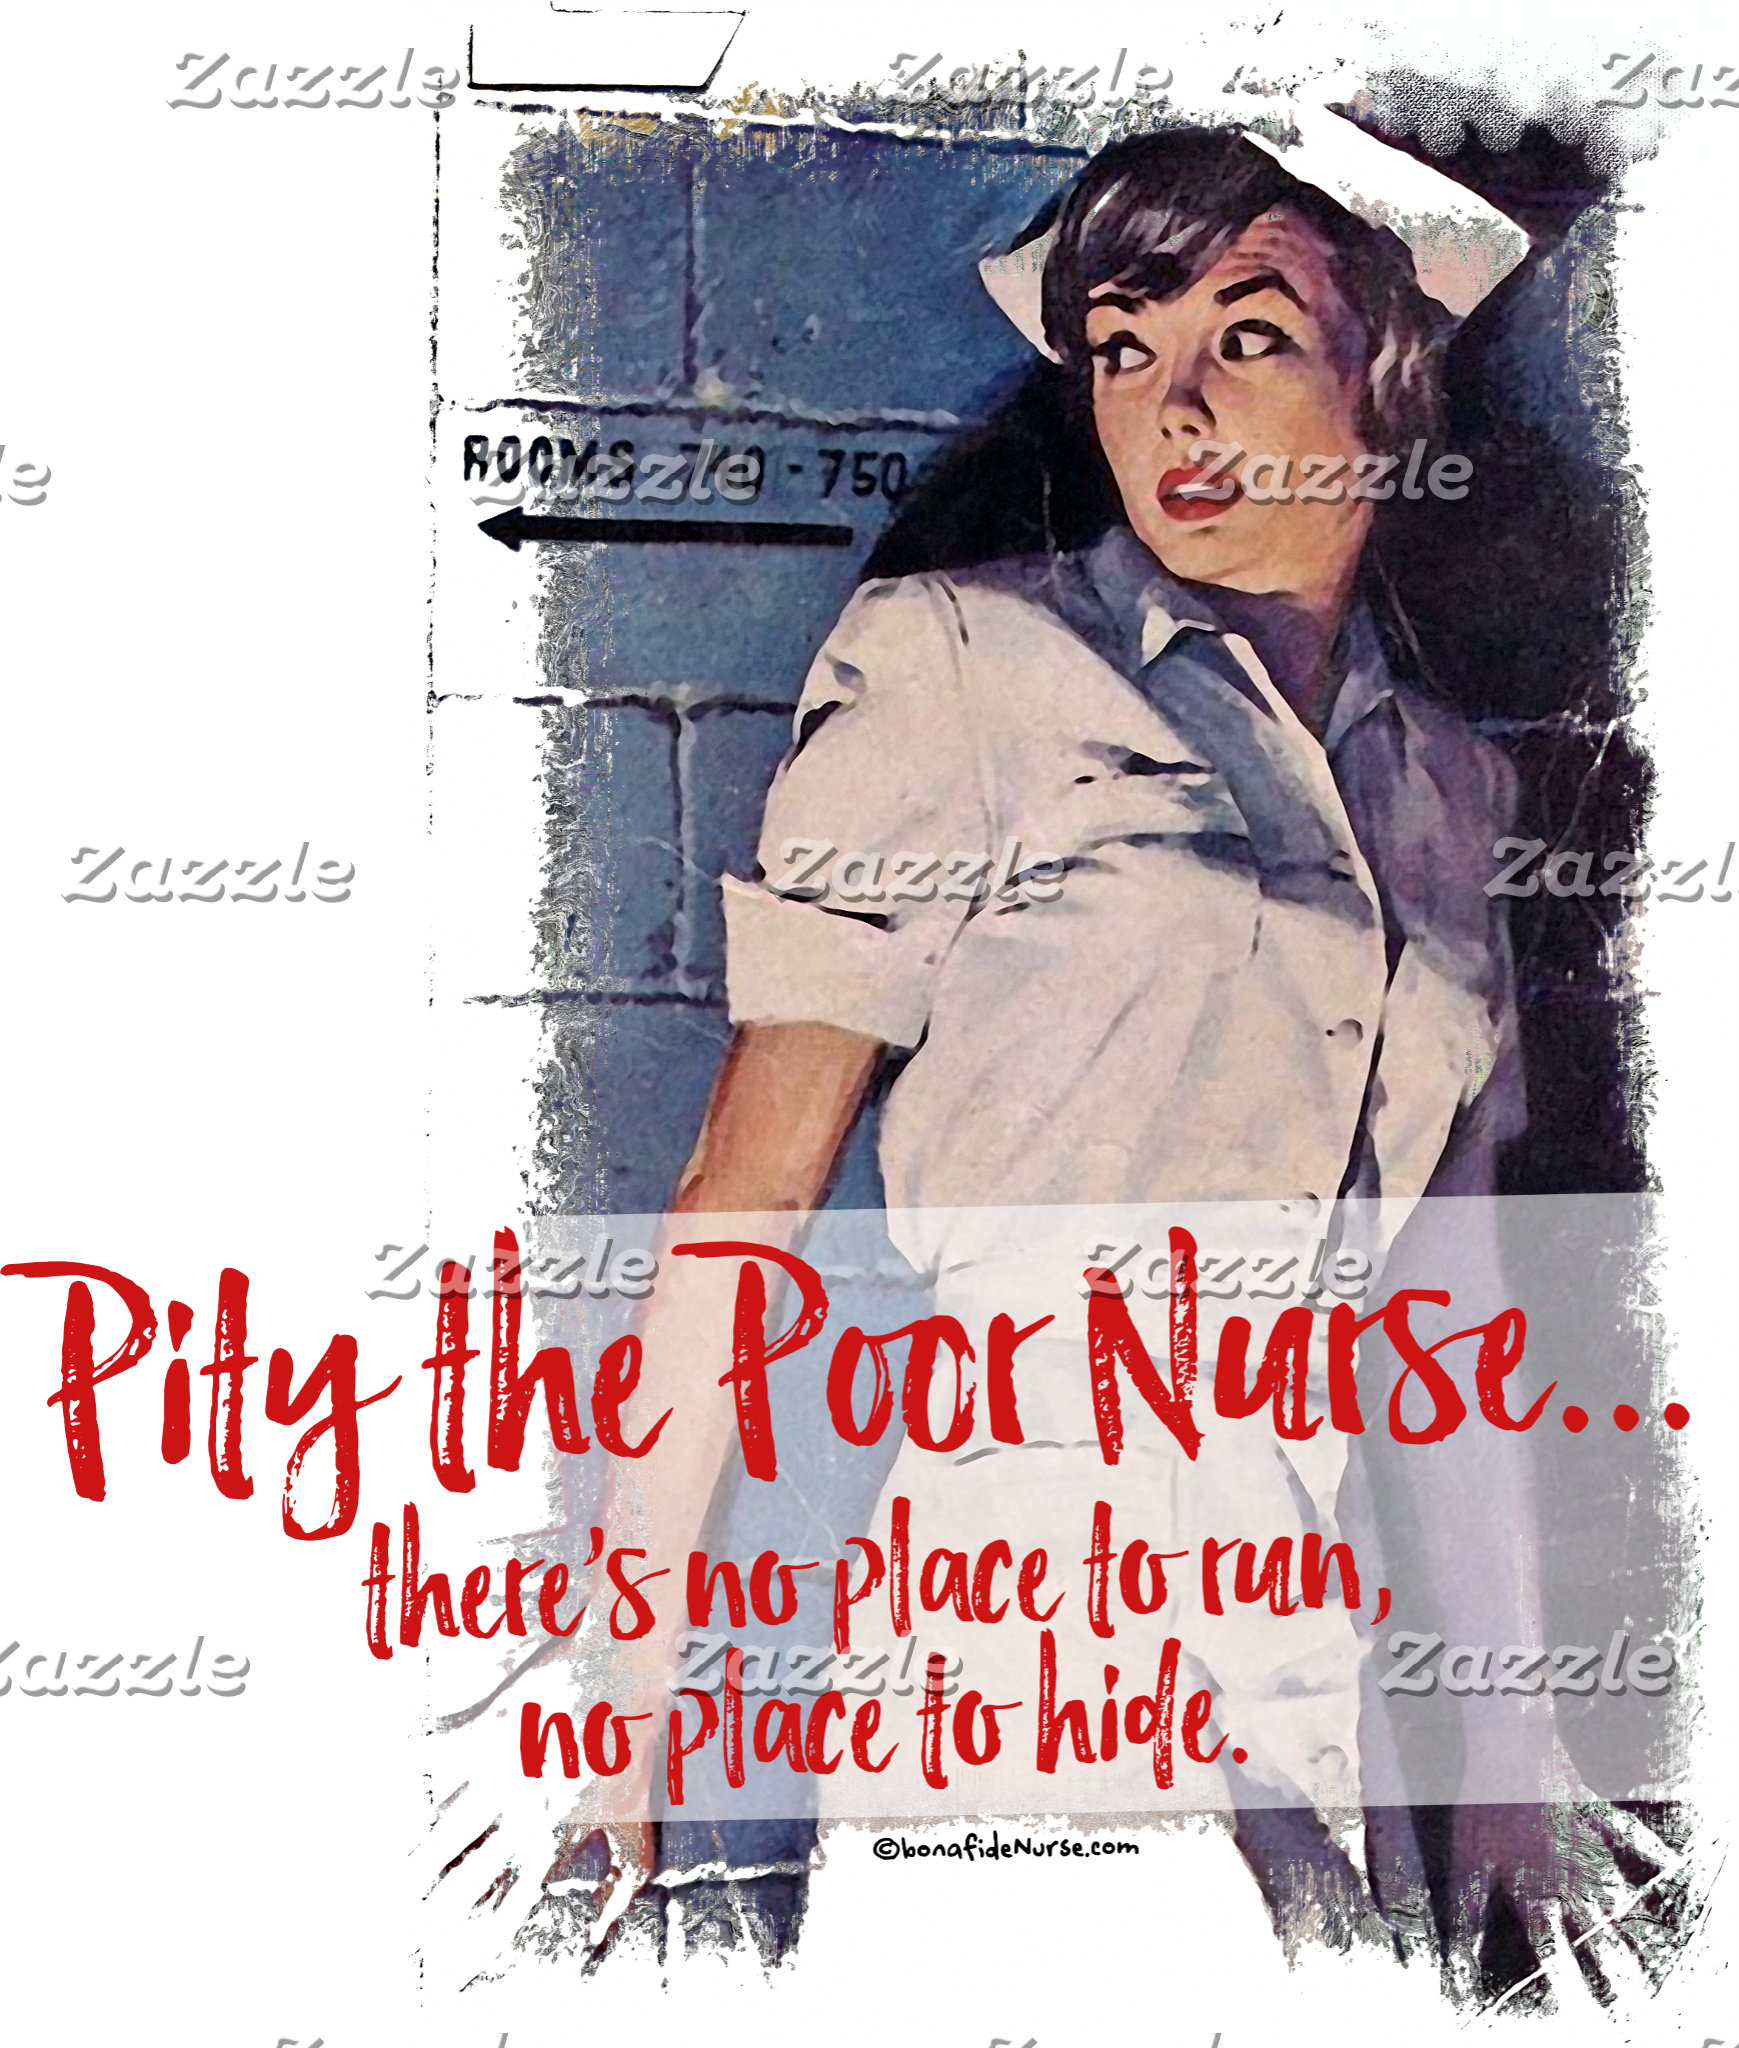 Pity the Poor Nurse